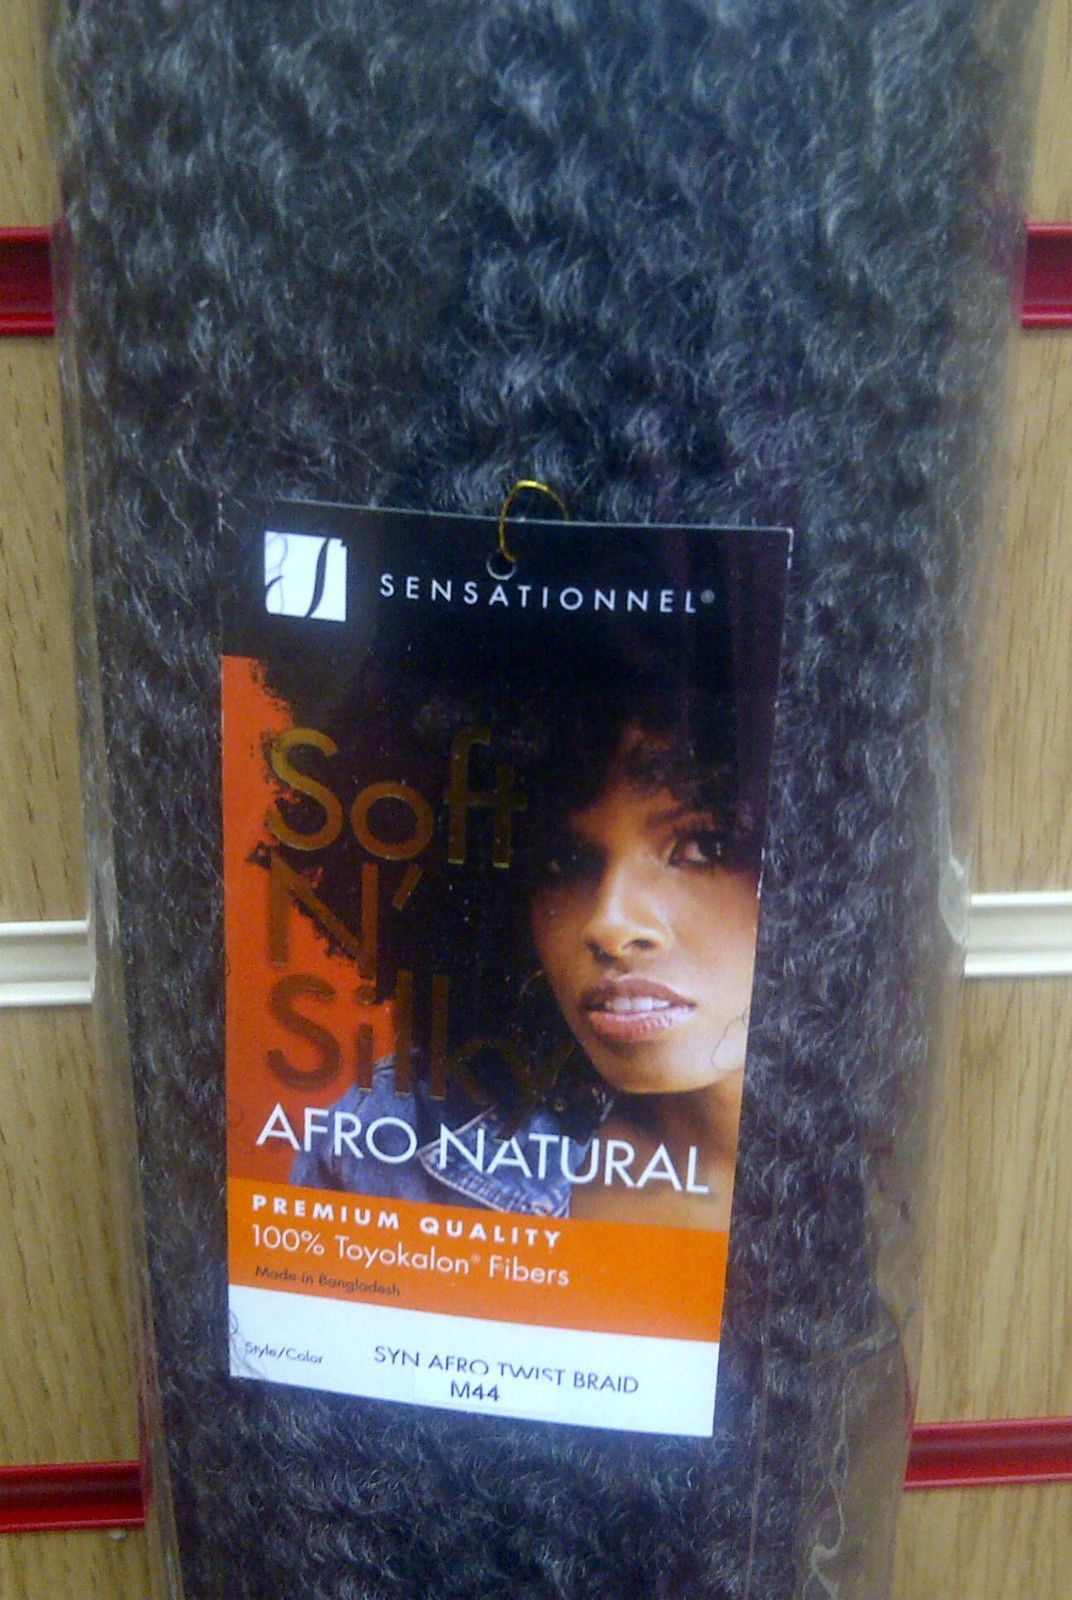 Sensationnel Soft N Silk Afro Natural Premium Quality 100 Fibers